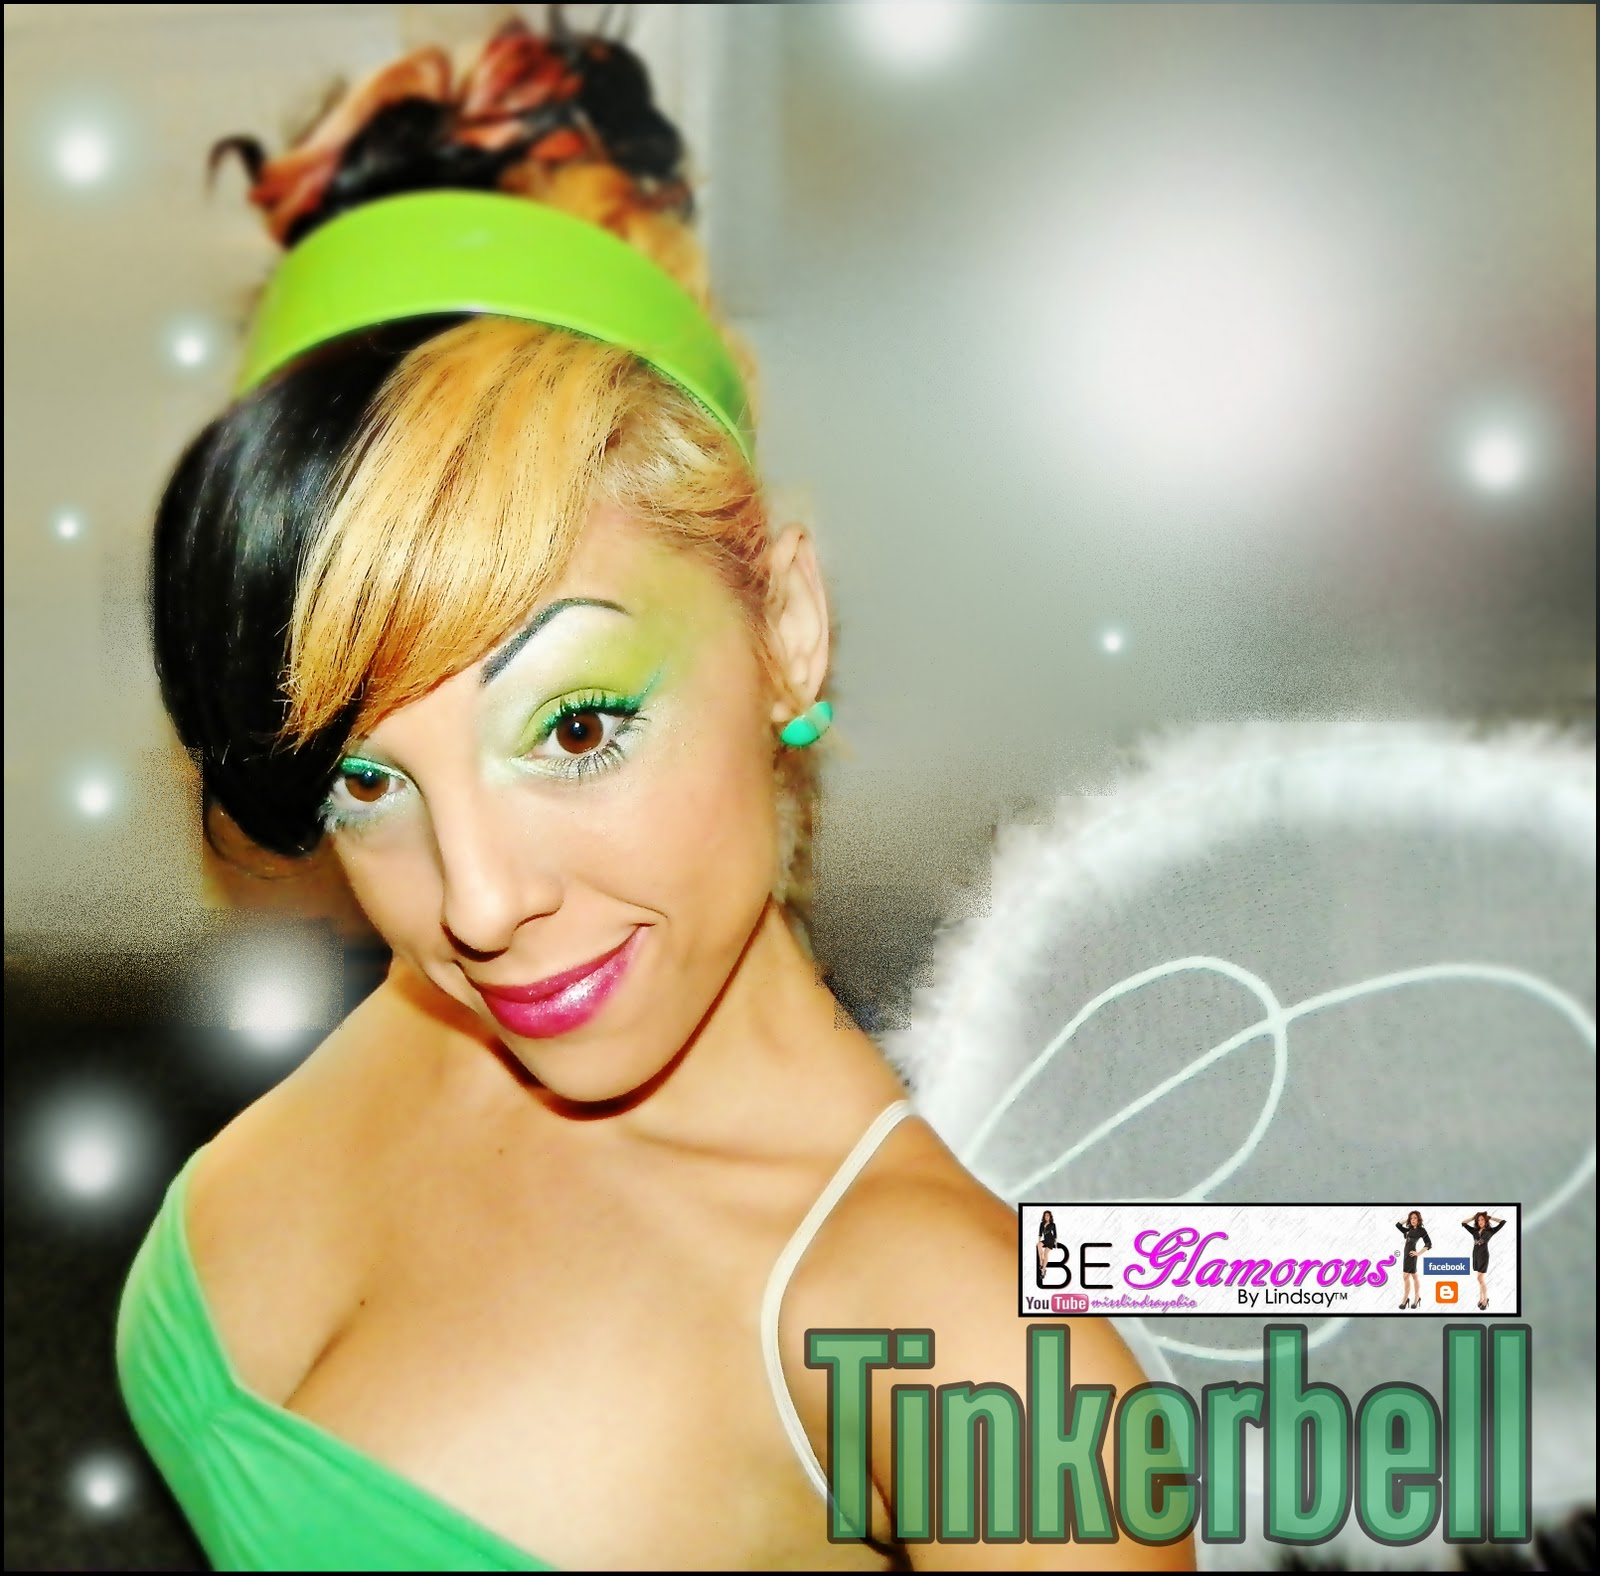 Be glamorous by lindsay green fairy makeup halloween tutorial green fairy makeup halloween tutorial inspired by tinkerbell baditri Images